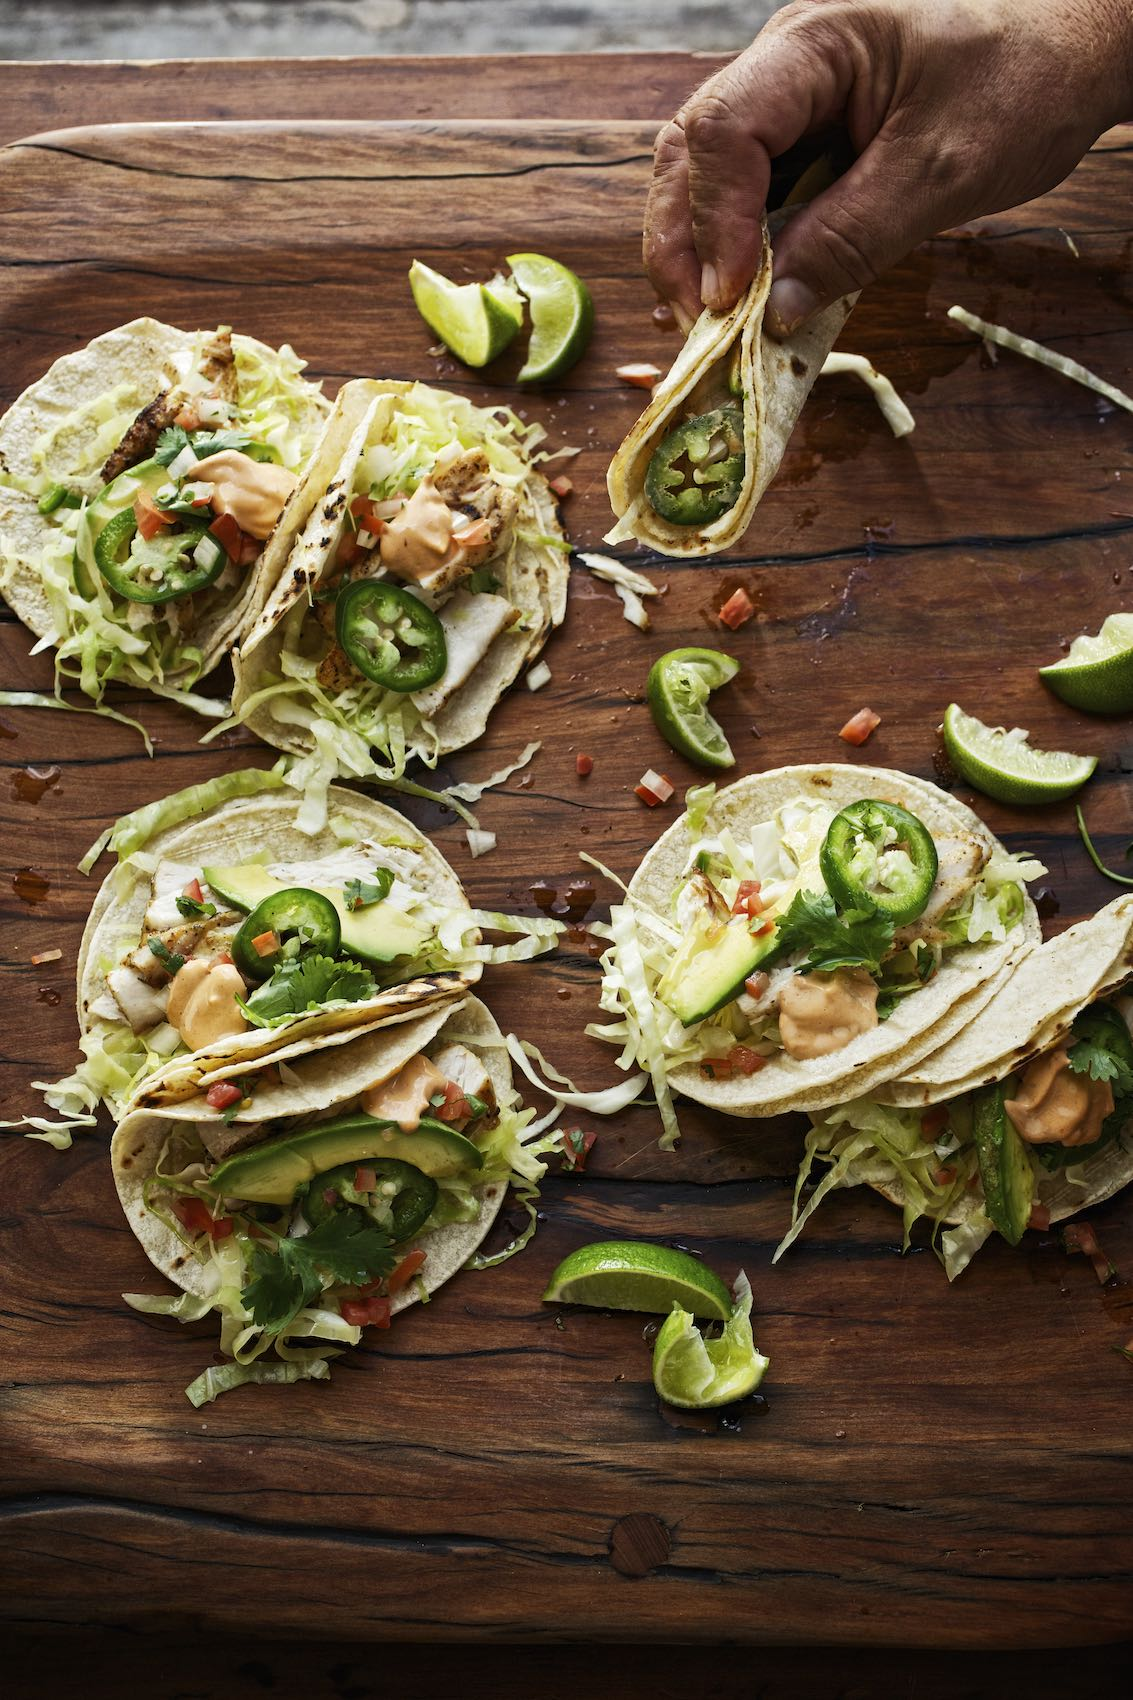 Jody Horton Photography - Assorted tacos with lime on wood surface.